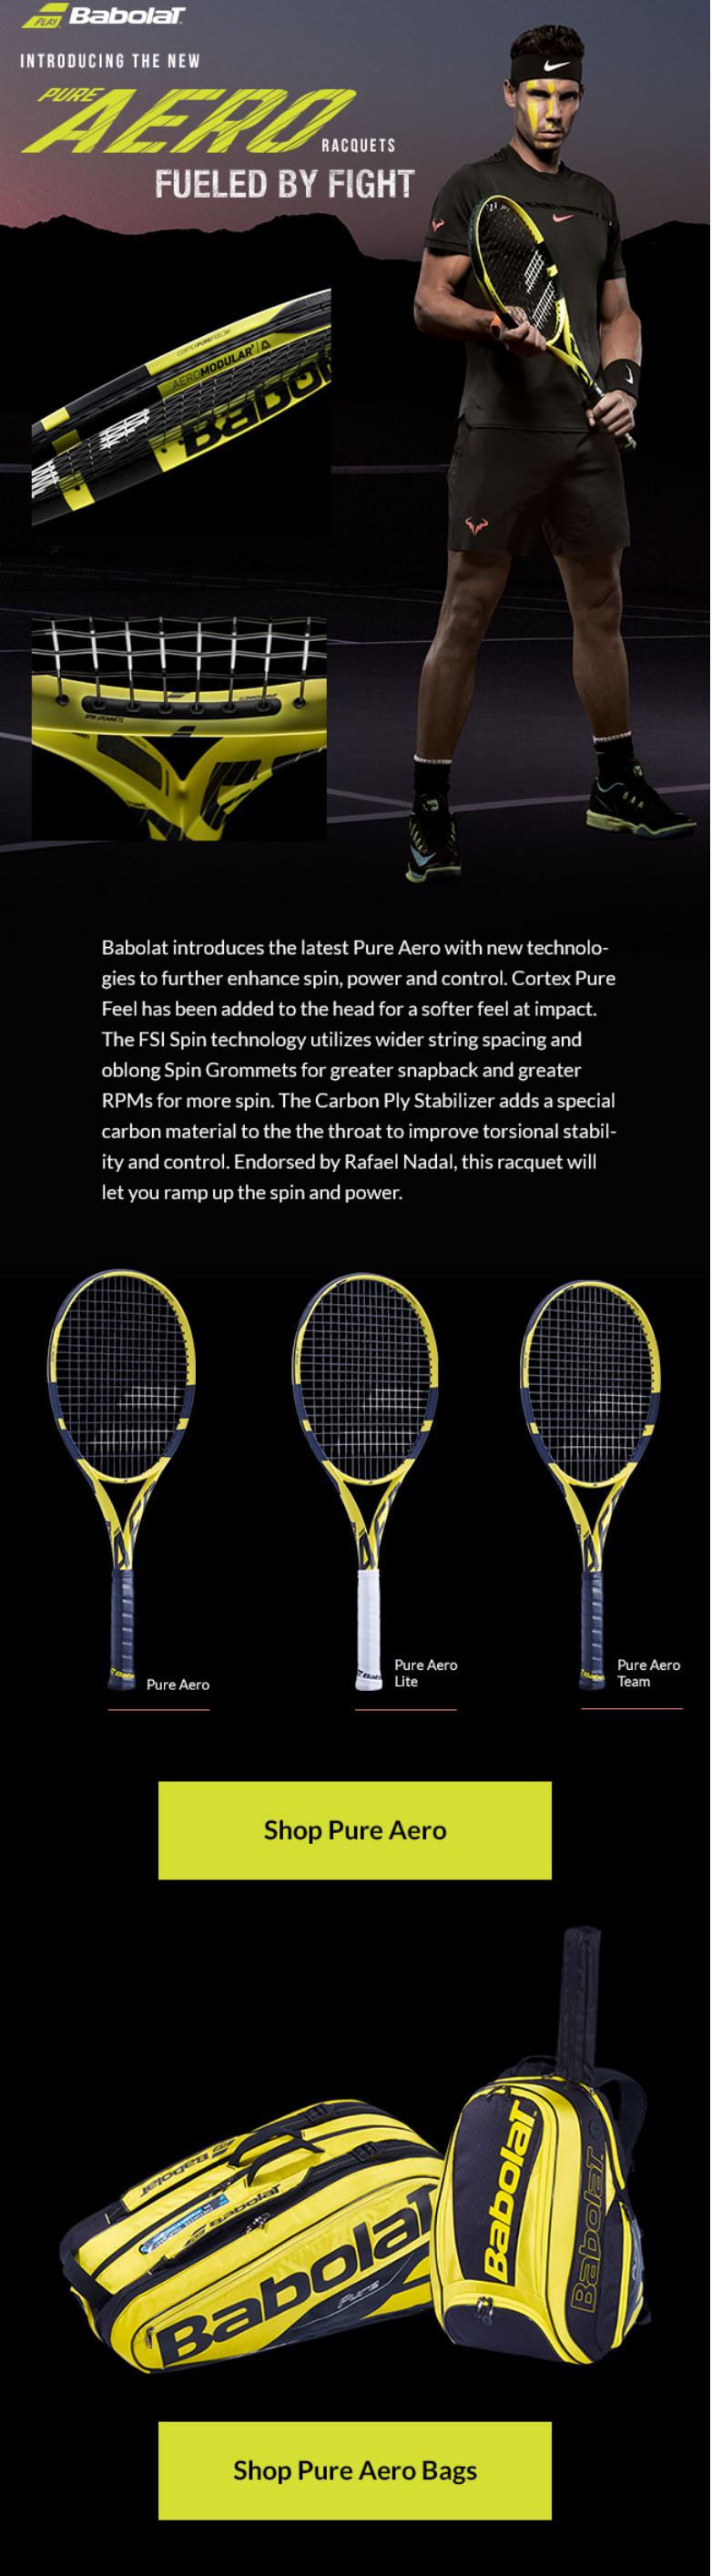 Updating one of the game's most iconic racquet lines is a monumental task. With this edition, Babola...